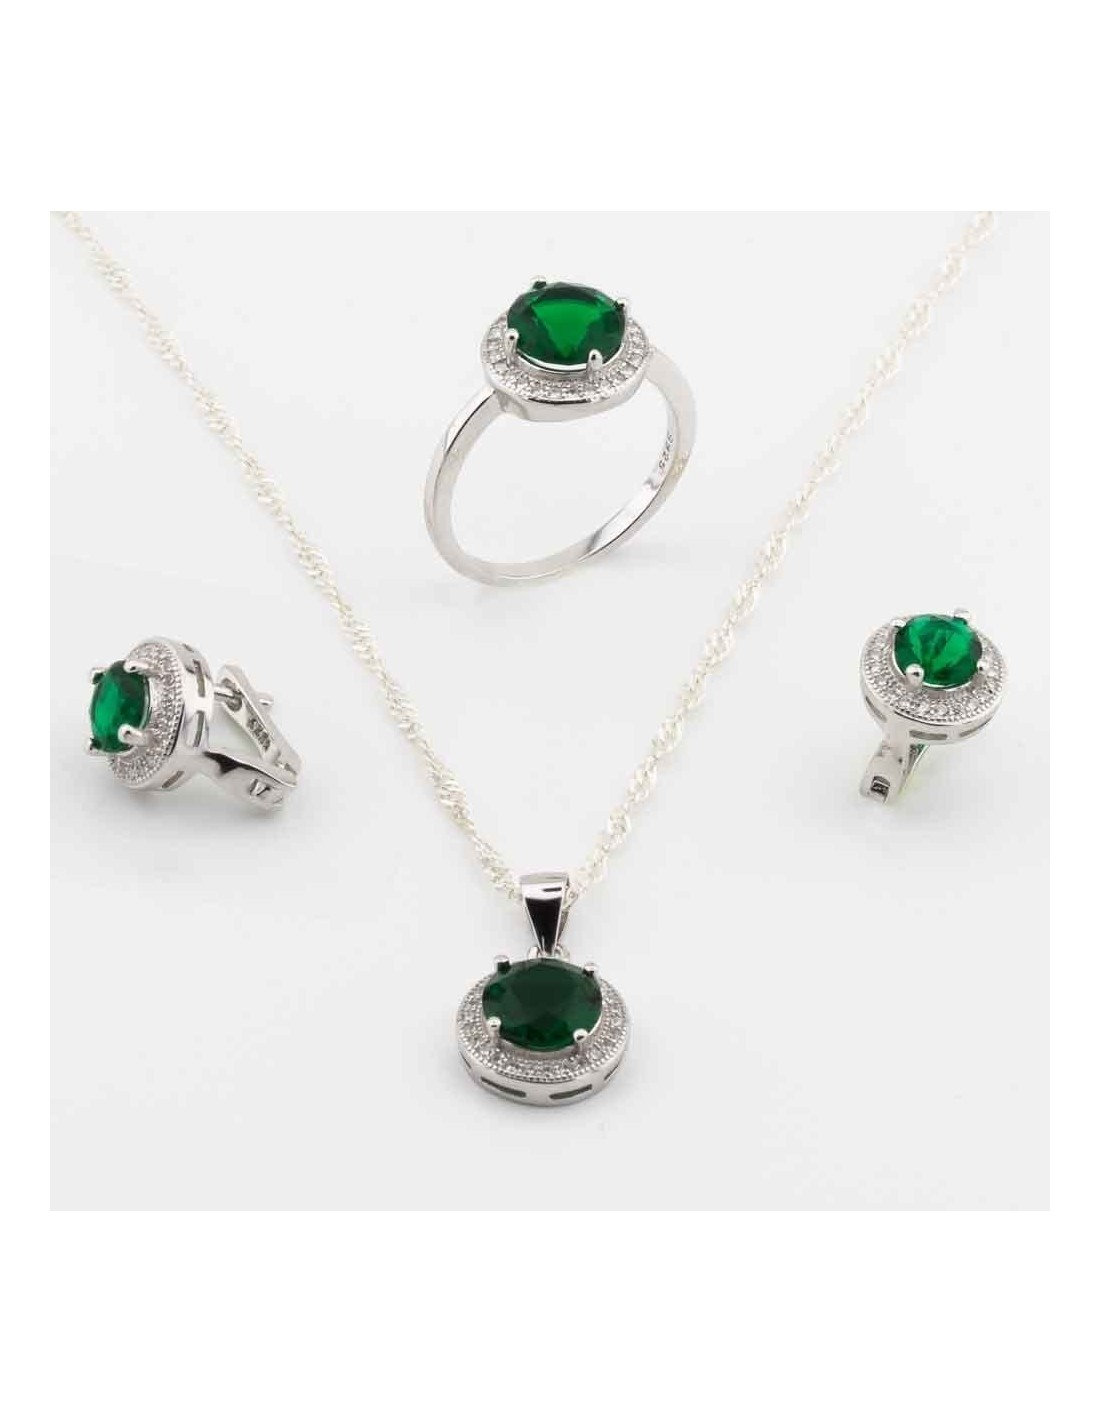 a468e17952dd3 Jewelry Set: Necklace Ring and Earrings in Sterling Silver